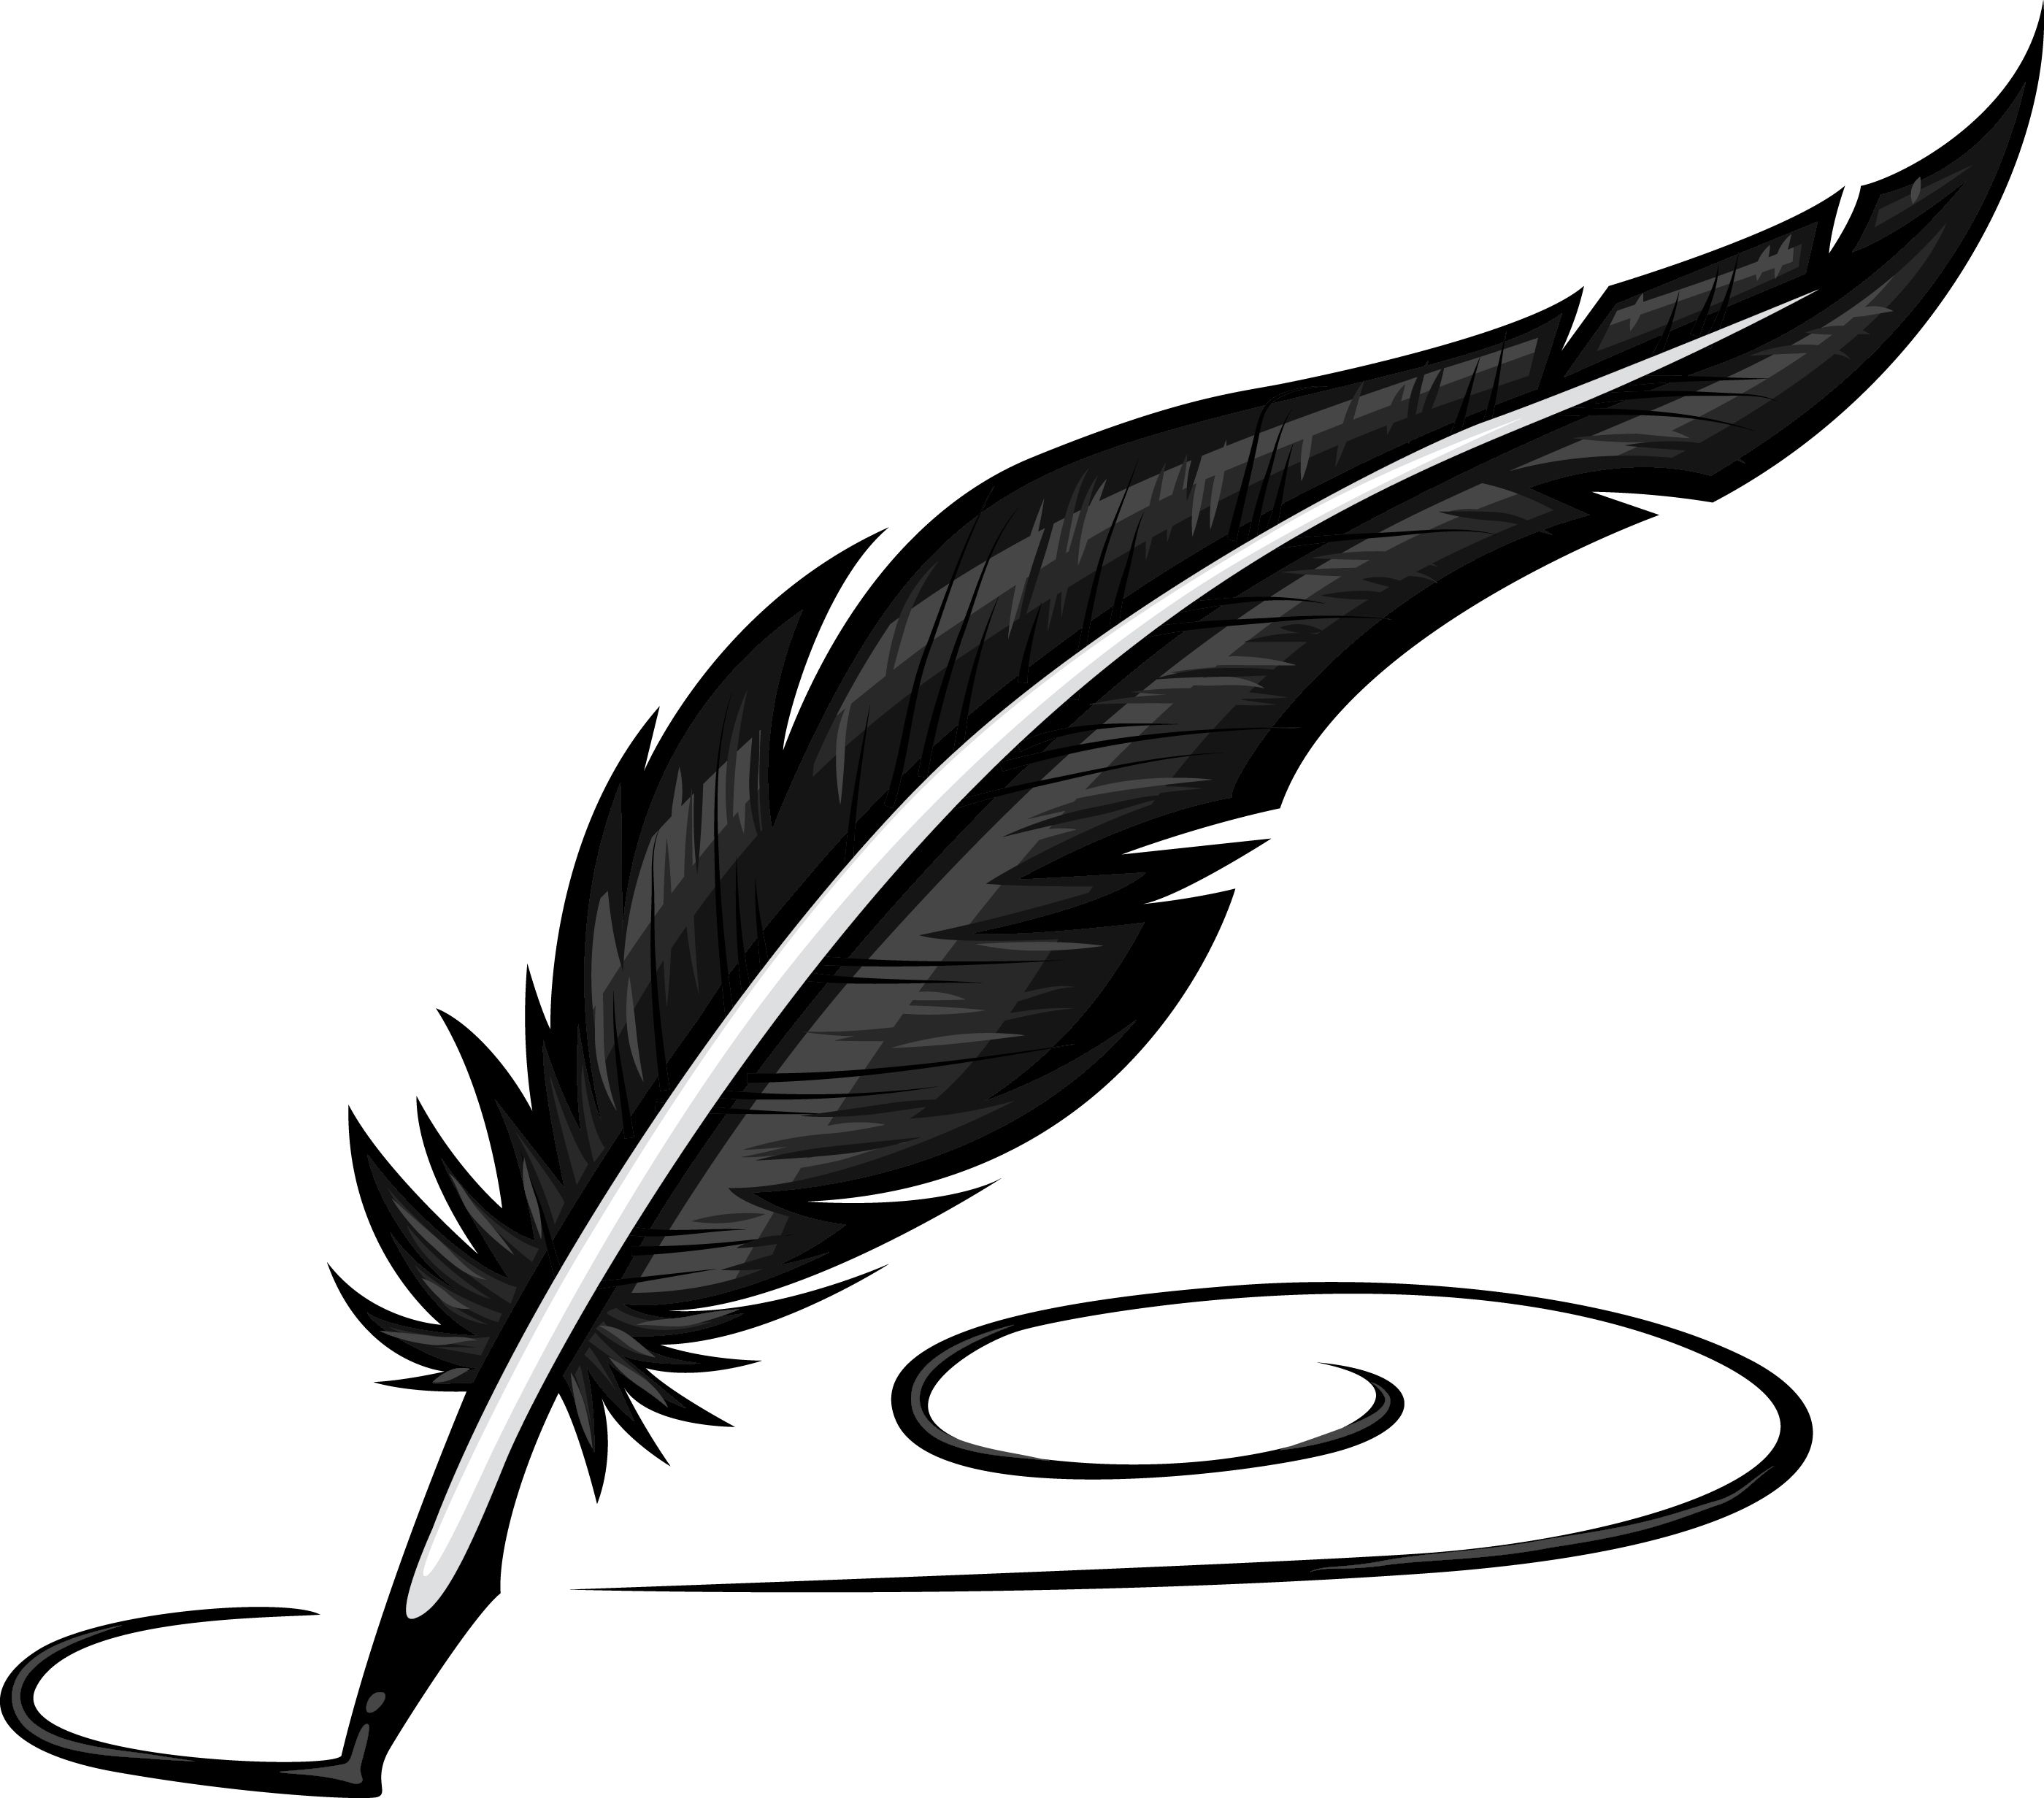 quill cliparts writing with pinterest quill journaling and bible rh pinterest com quill clipart free clipart quill pen